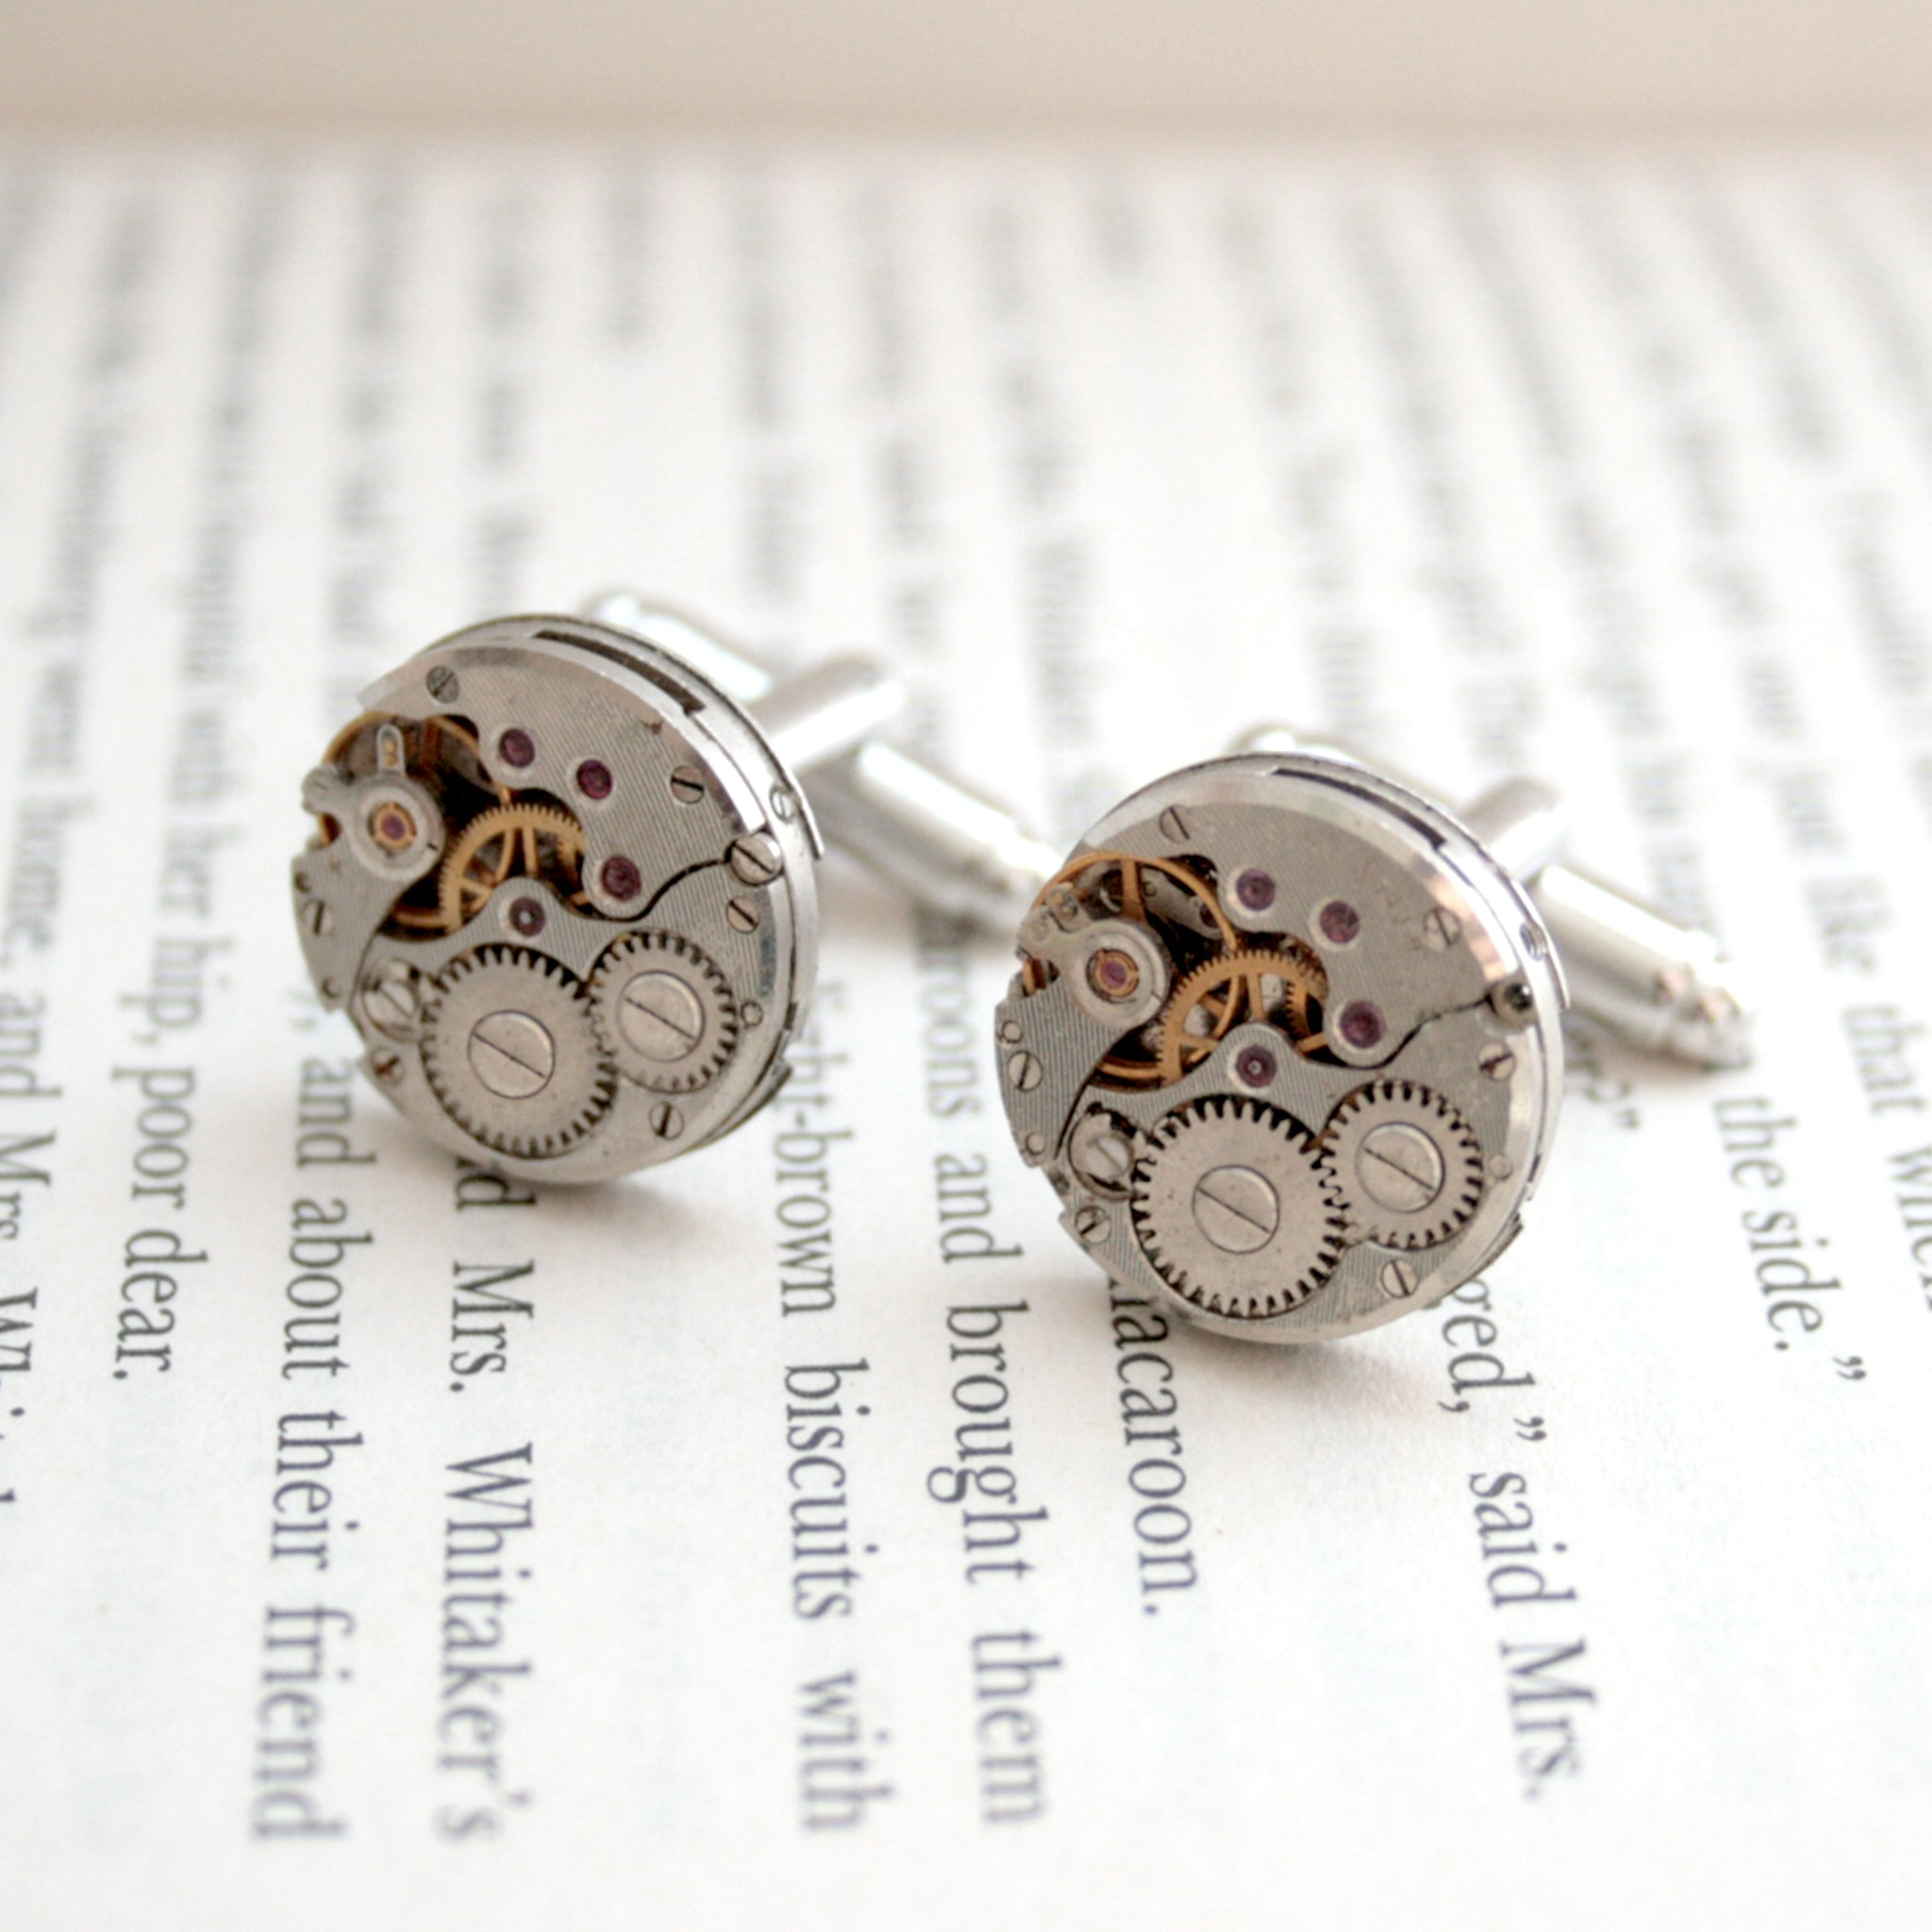 Cufflinks Set featuring antique watch movements in steampunk style